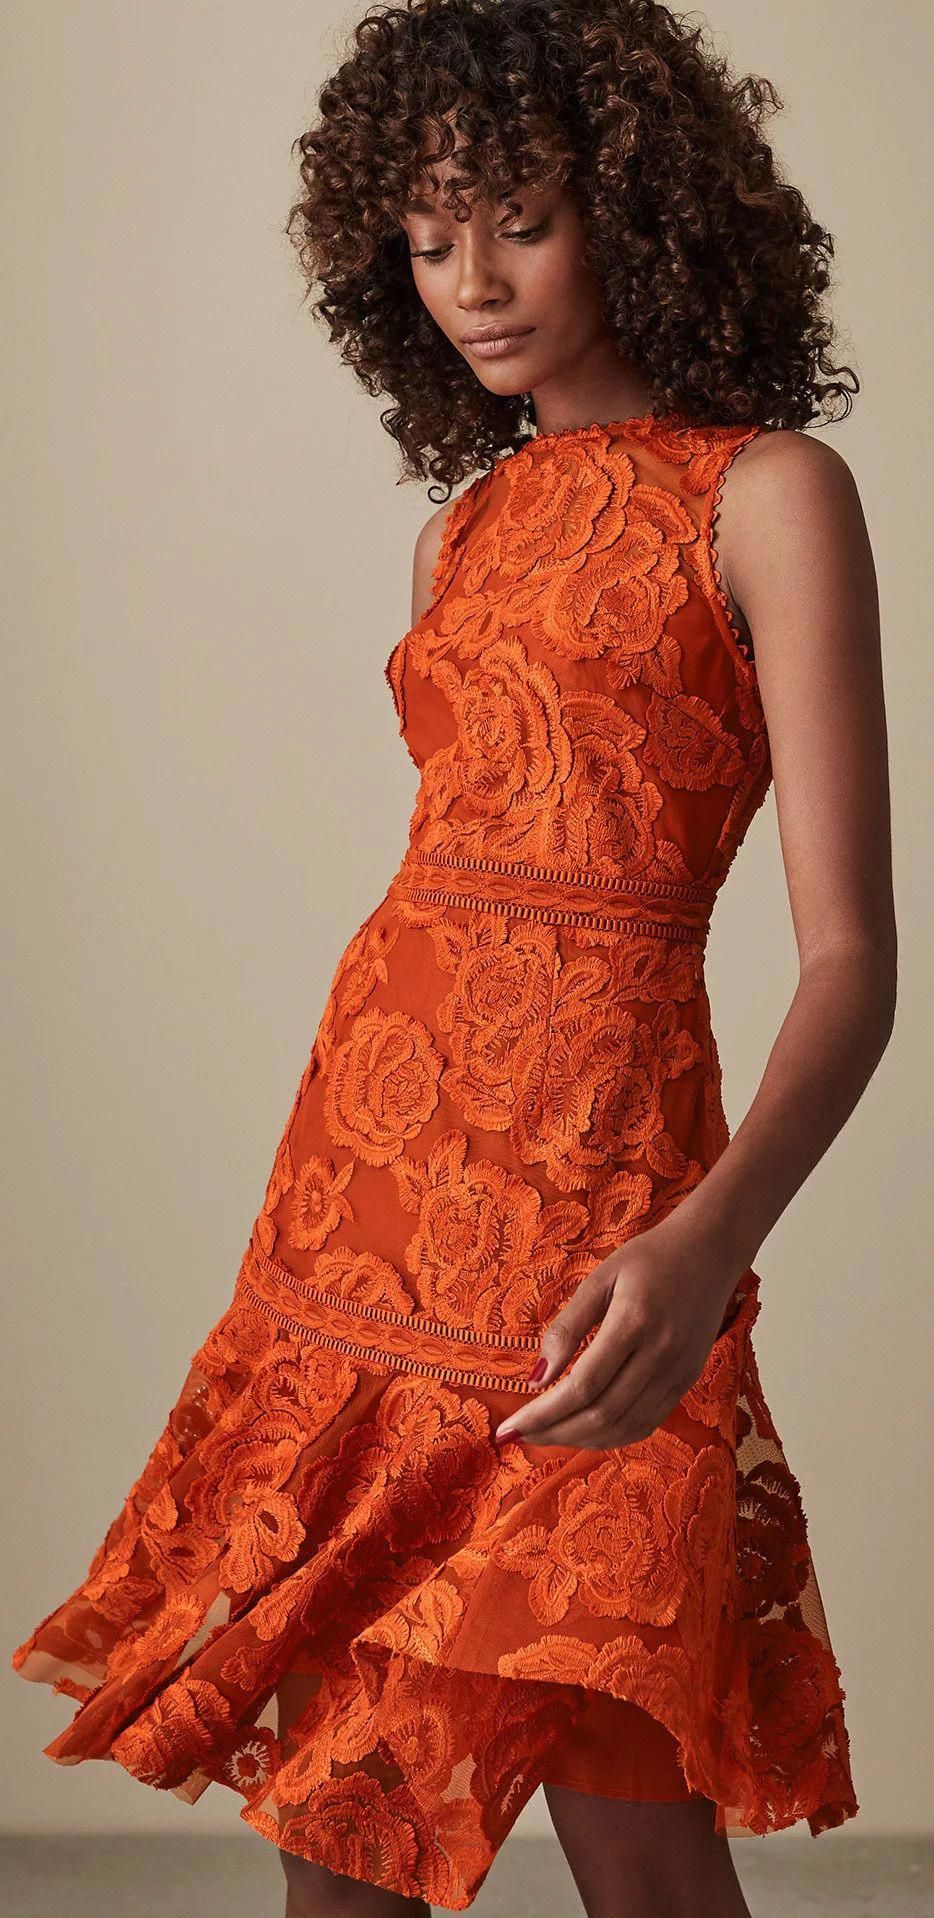 Burnt Orange Lace Floral Dress Perfect Dress For A Spring Wedding Guest Out Orange Wedding Guest Dresses Wedding Guest Outfit Fall Wedding Guest Outfit Spring [ 1918 x 934 Pixel ]